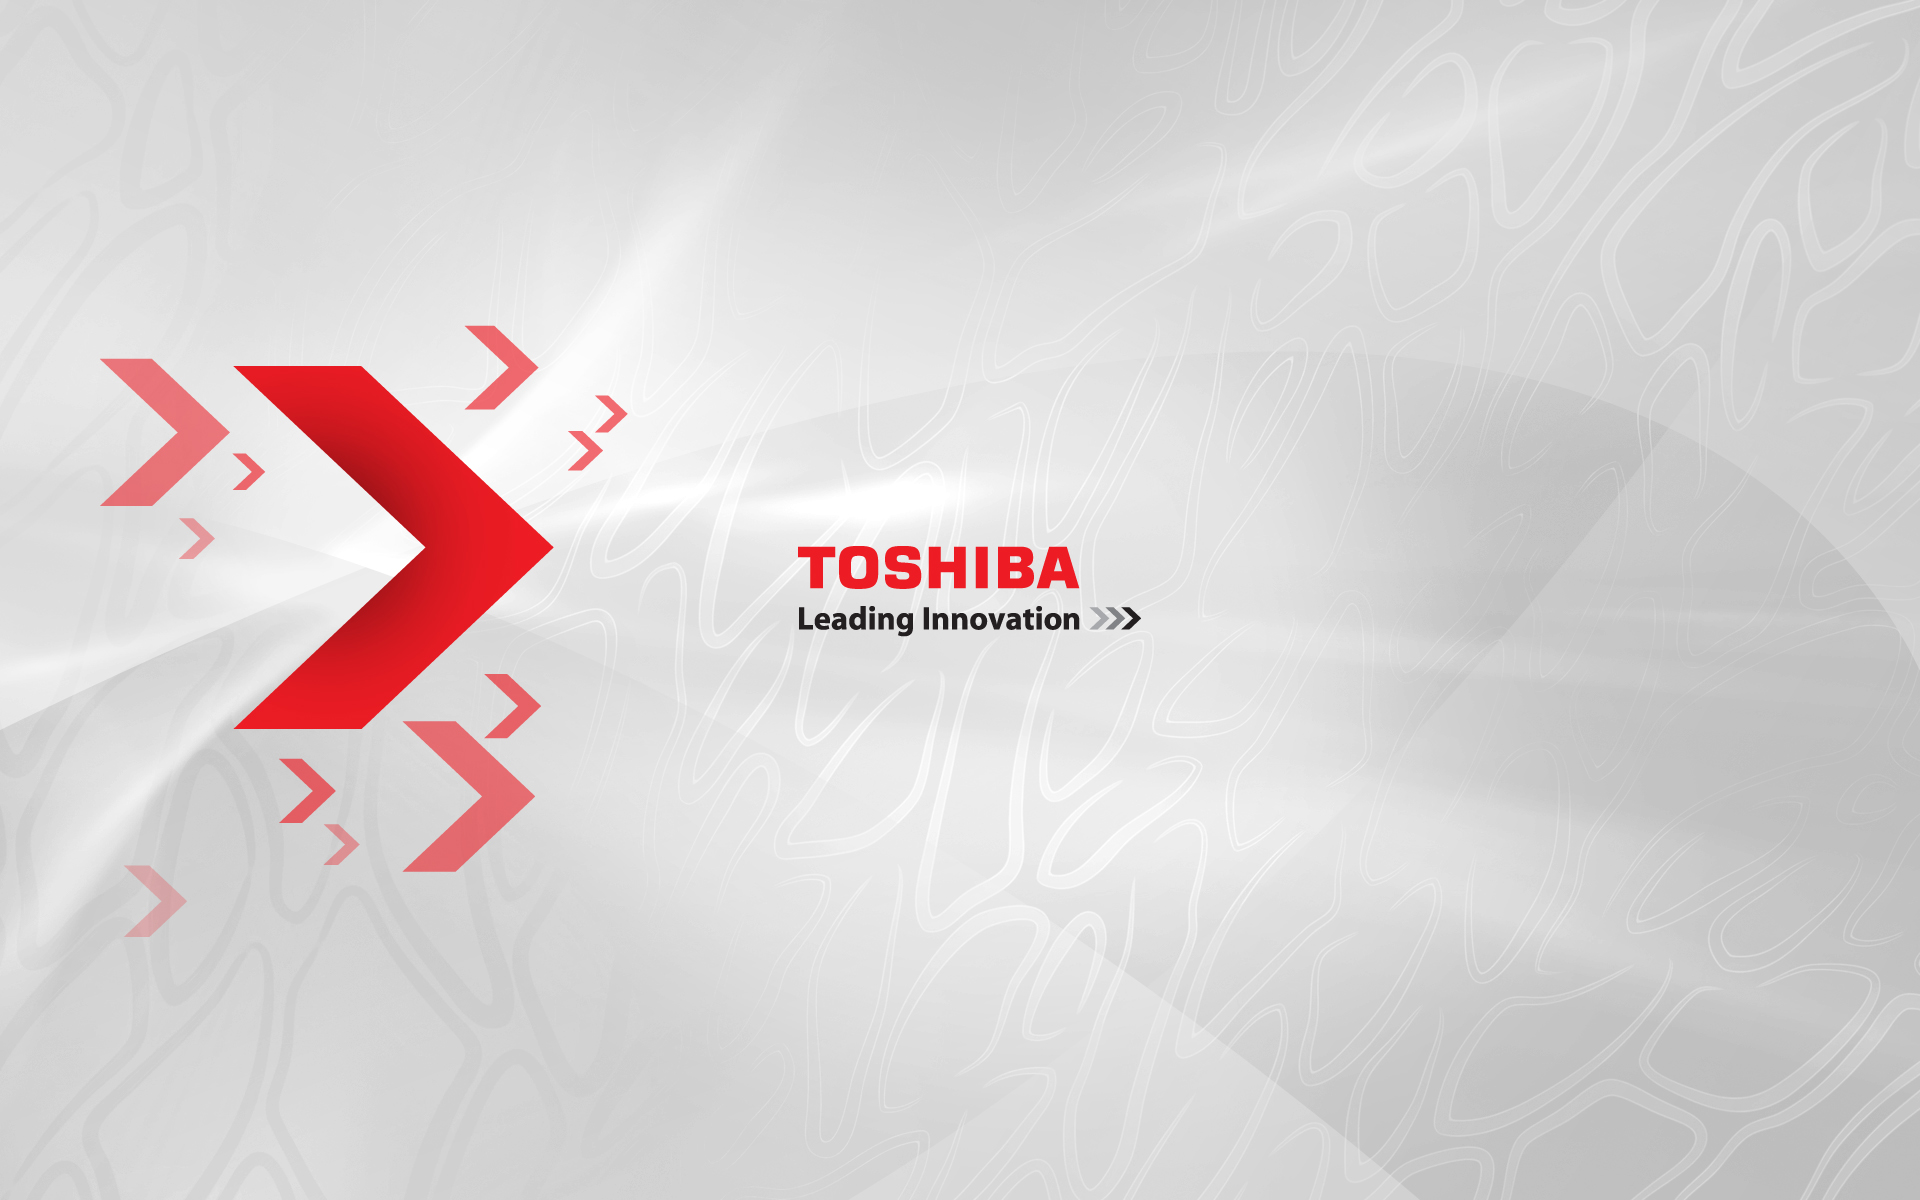 magnificent toshiba wallpaper full hd pictures